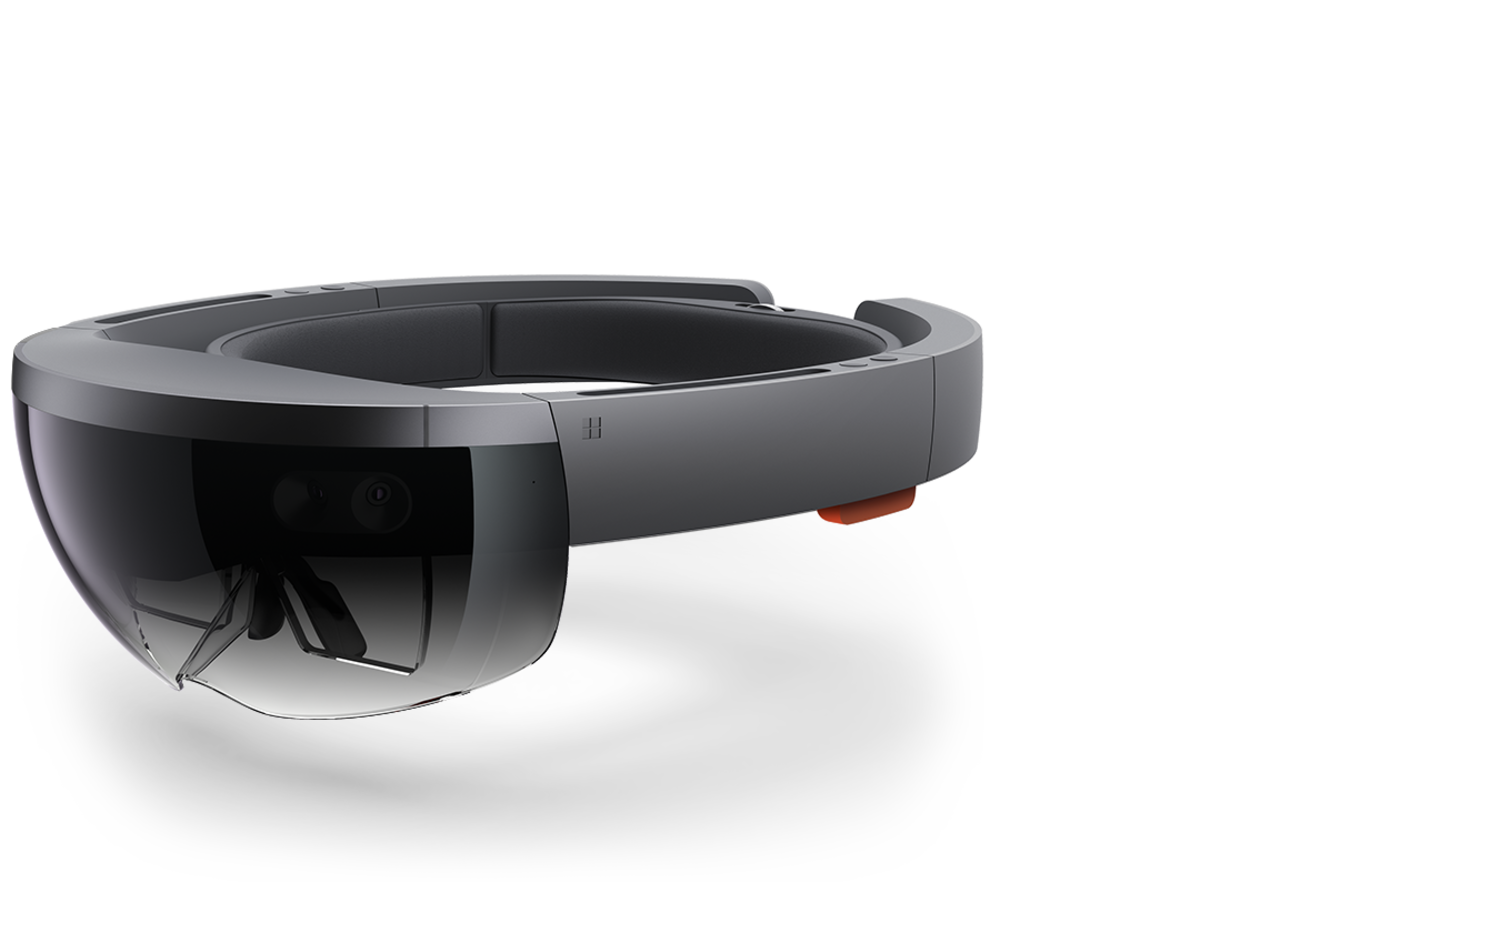 Productivity And Entertainment: The HoloLens